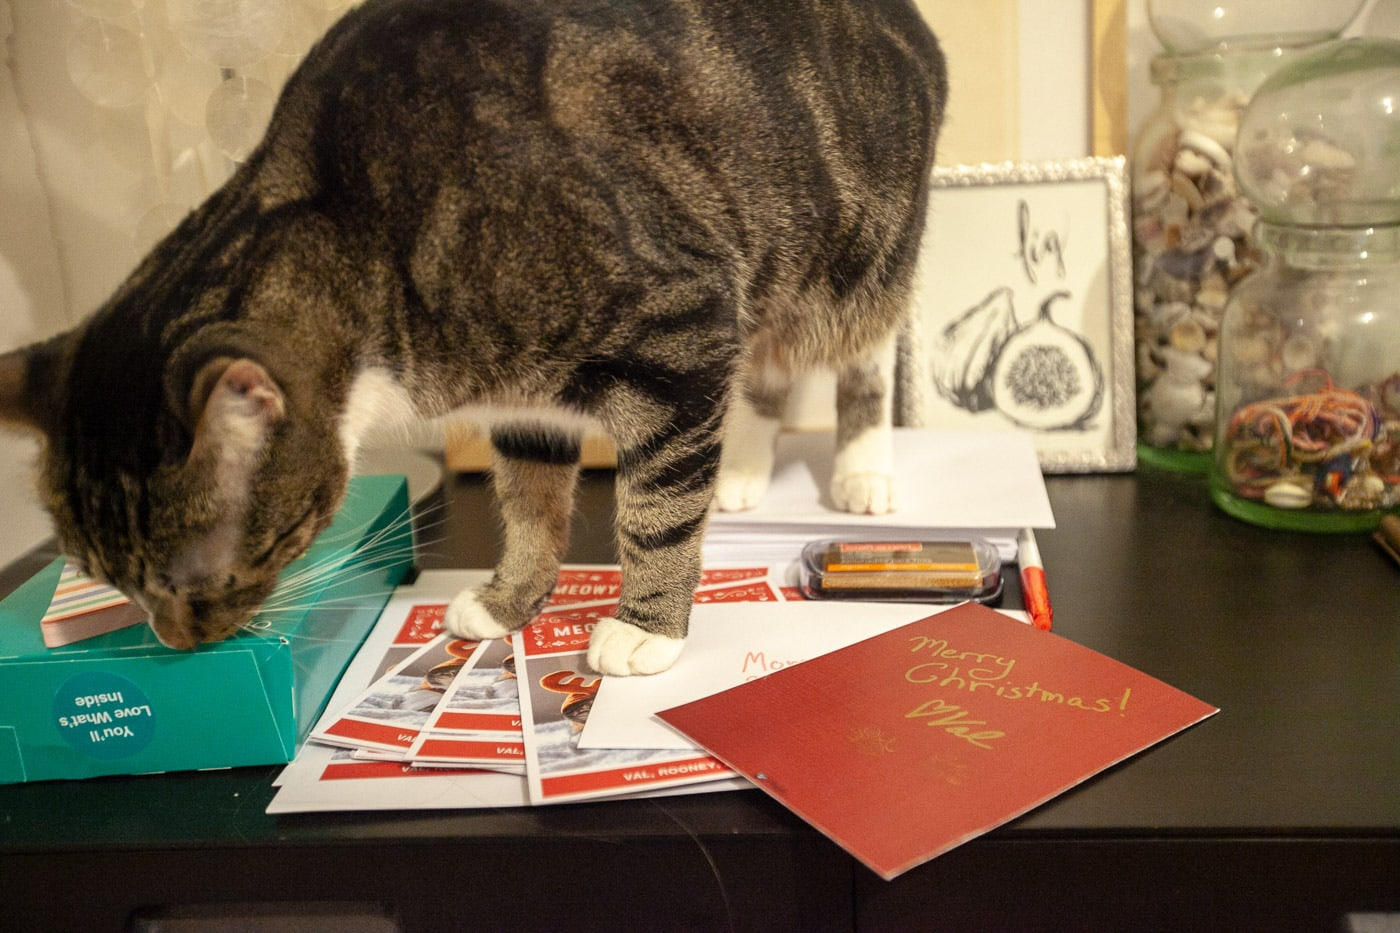 I sent Christmas cards for the first time ever. | Have a Very Meowy Christmas cat photo Christmas cards from Walgreens.